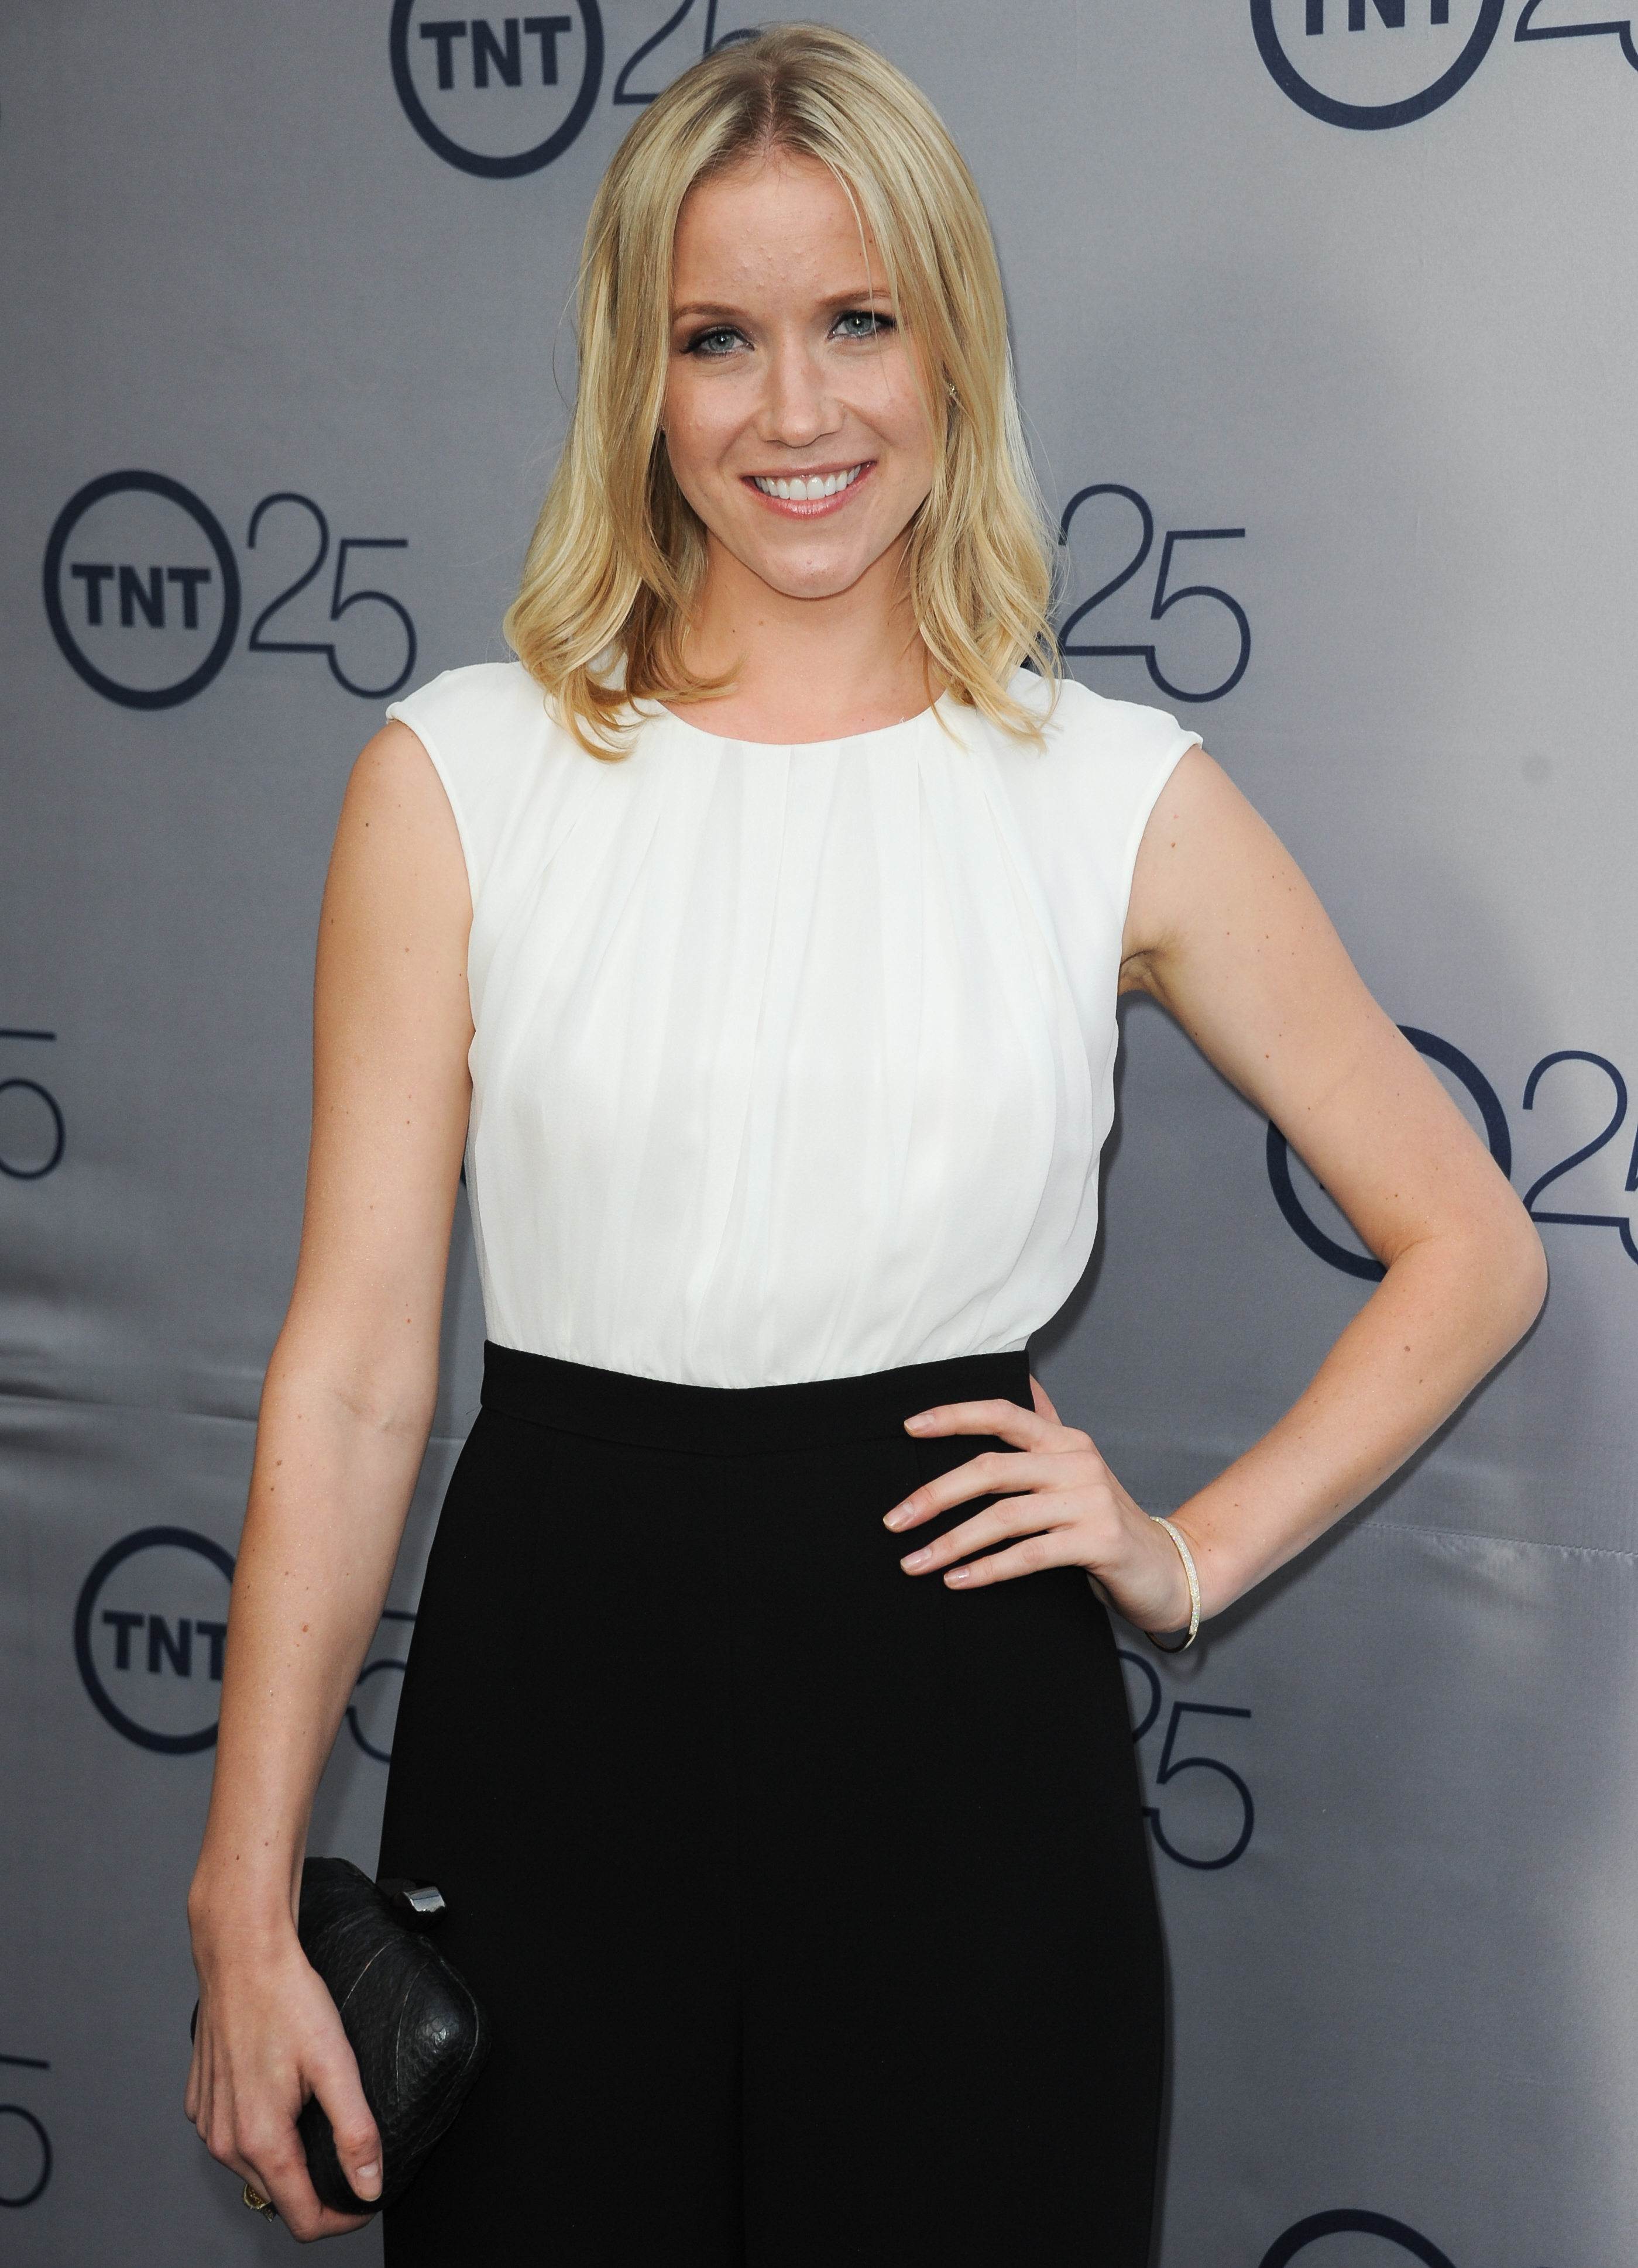 Jessy Schram TNT's 25th Anniversary Party -- Beverly Hills, Jul. 24, 2013